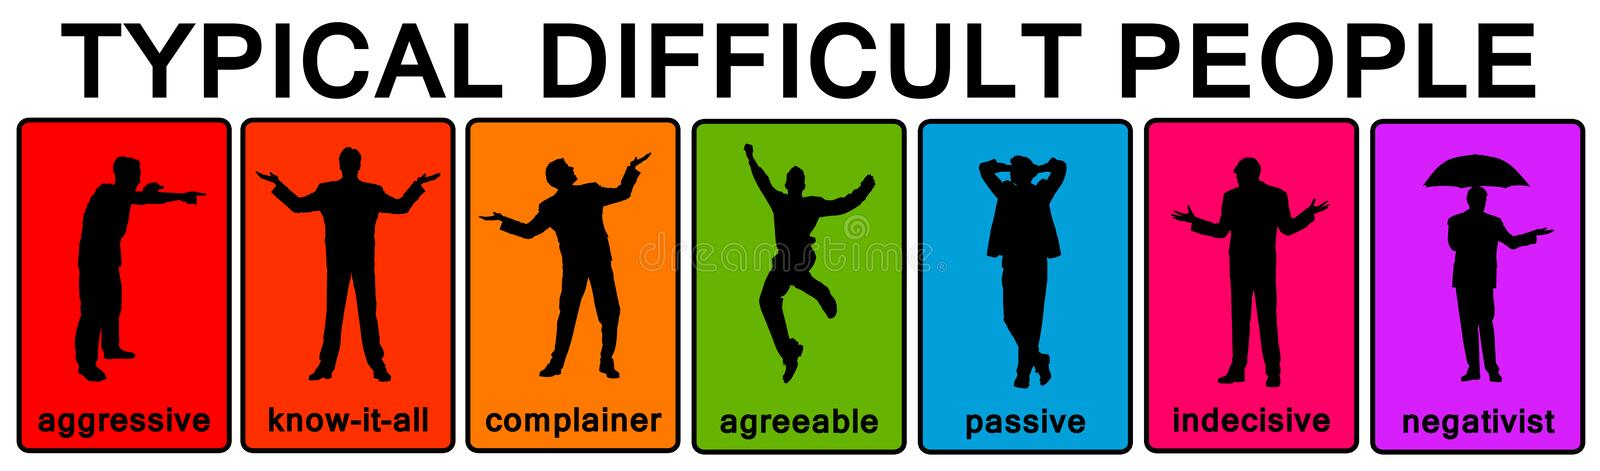 Typical difficult people. Wide range of typical difficult people vector illustration